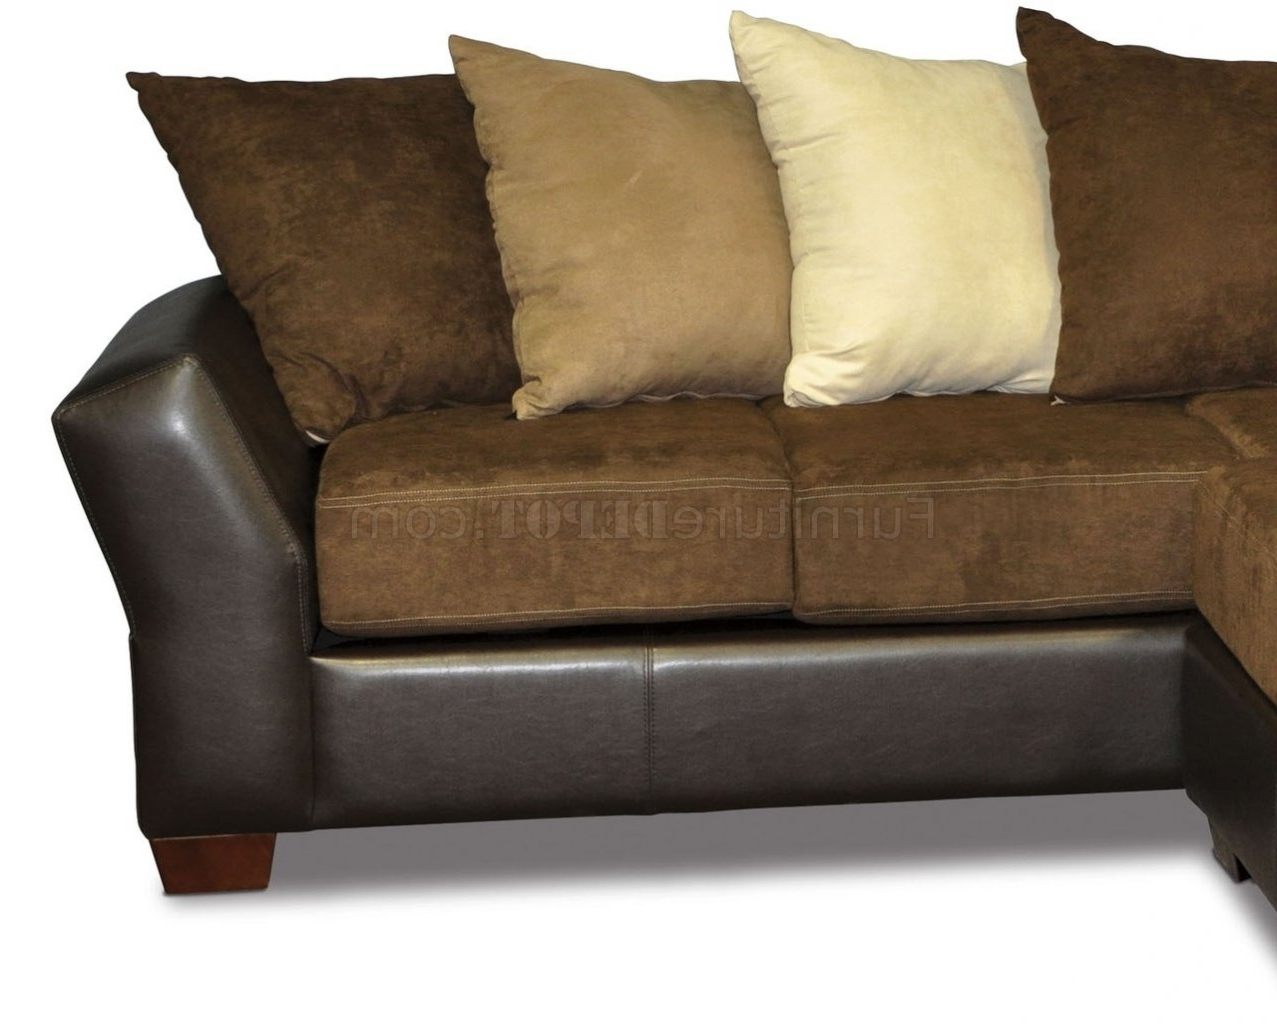 Most Current Sofas With Oversized Pillows In Large Pillows For Sofa – Mforum (View 2 of 15)